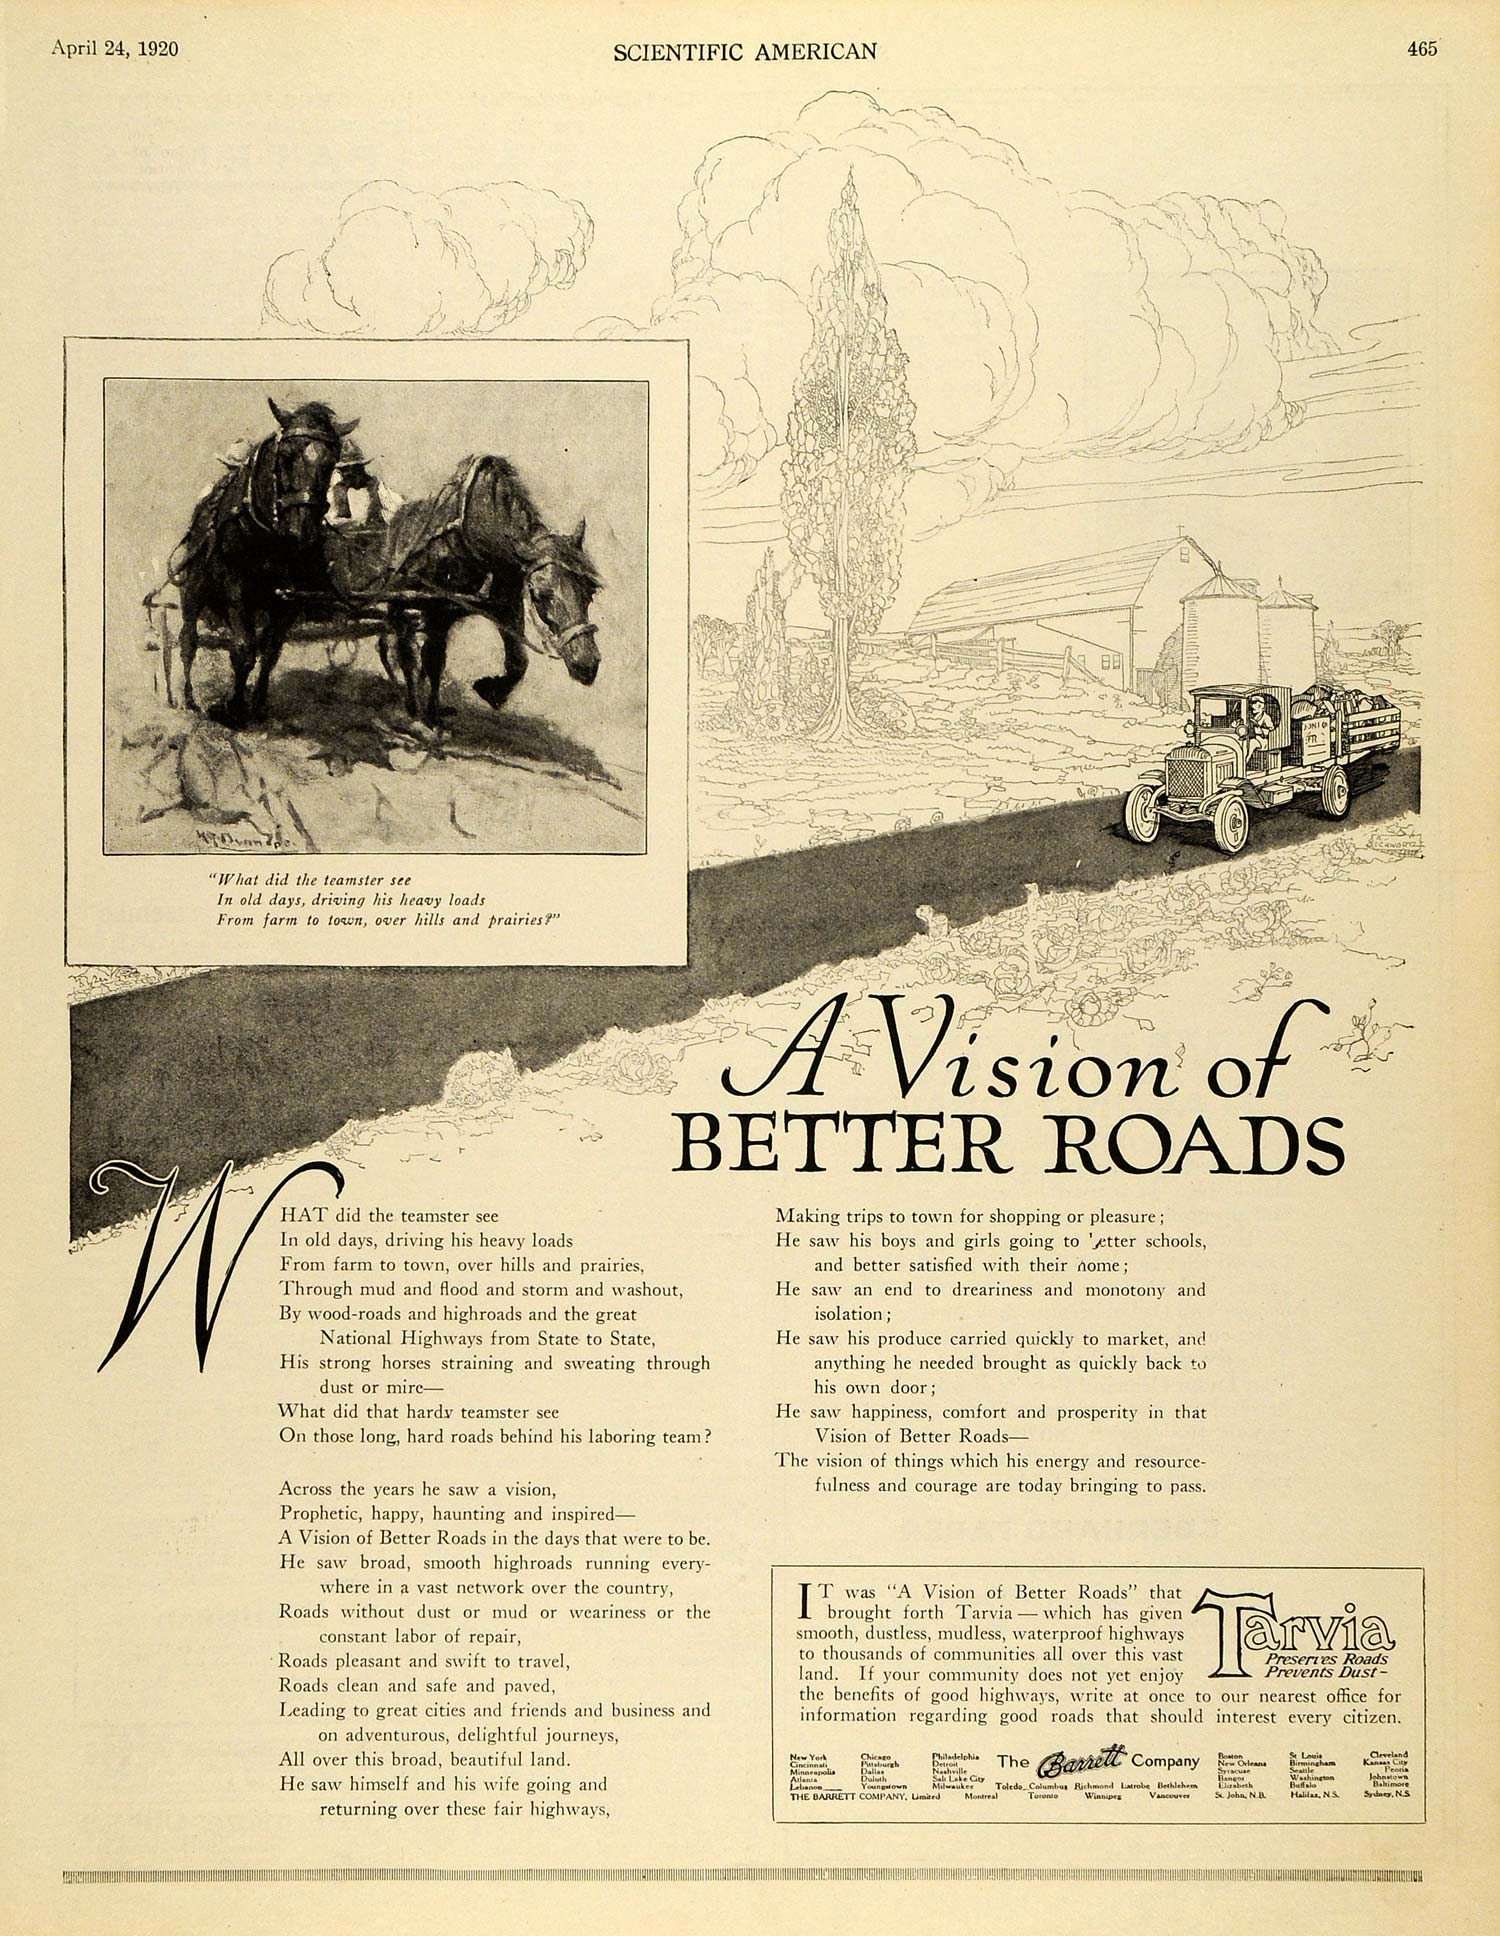 1920 Ad Barret Co Tarvia Countryside Teamster Wagon Horse Barn Road Rural SCA3